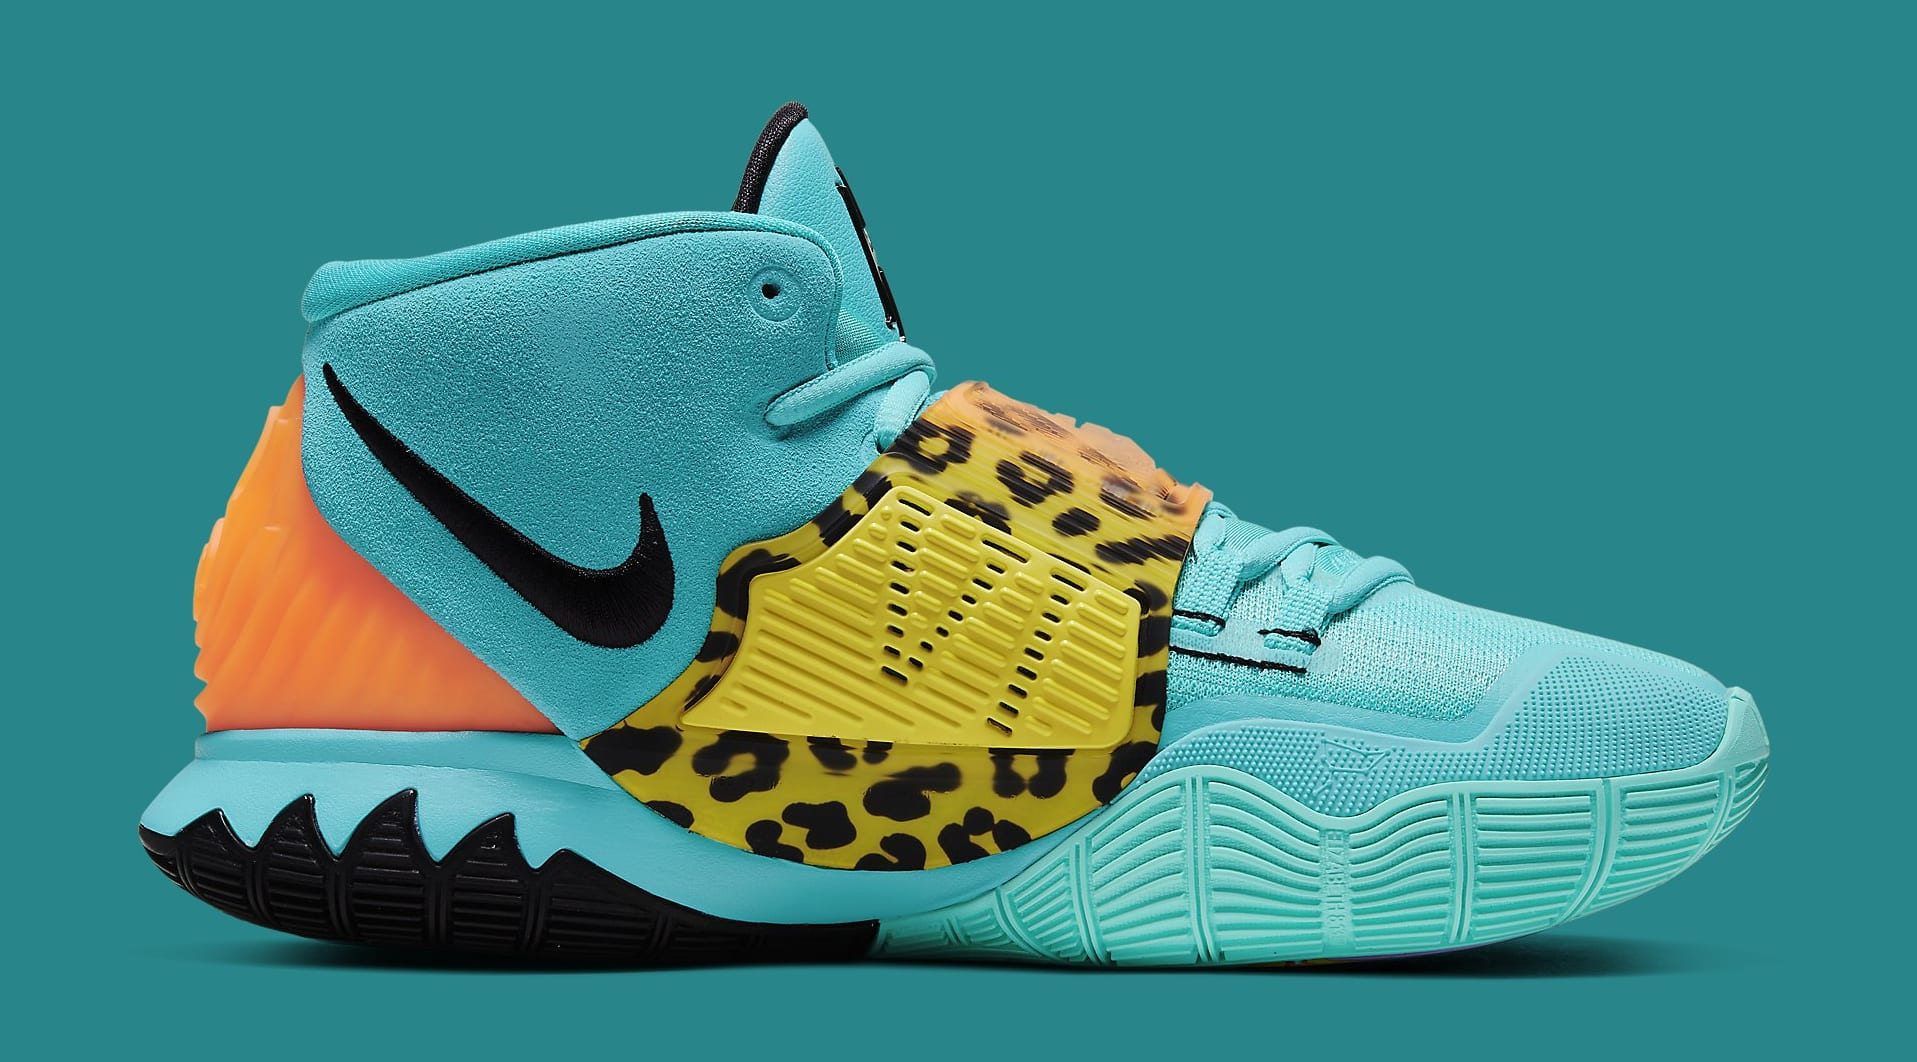 nike-kyrie-6-oracle-aqua-black-opti-yellow-bq4630-300-medial